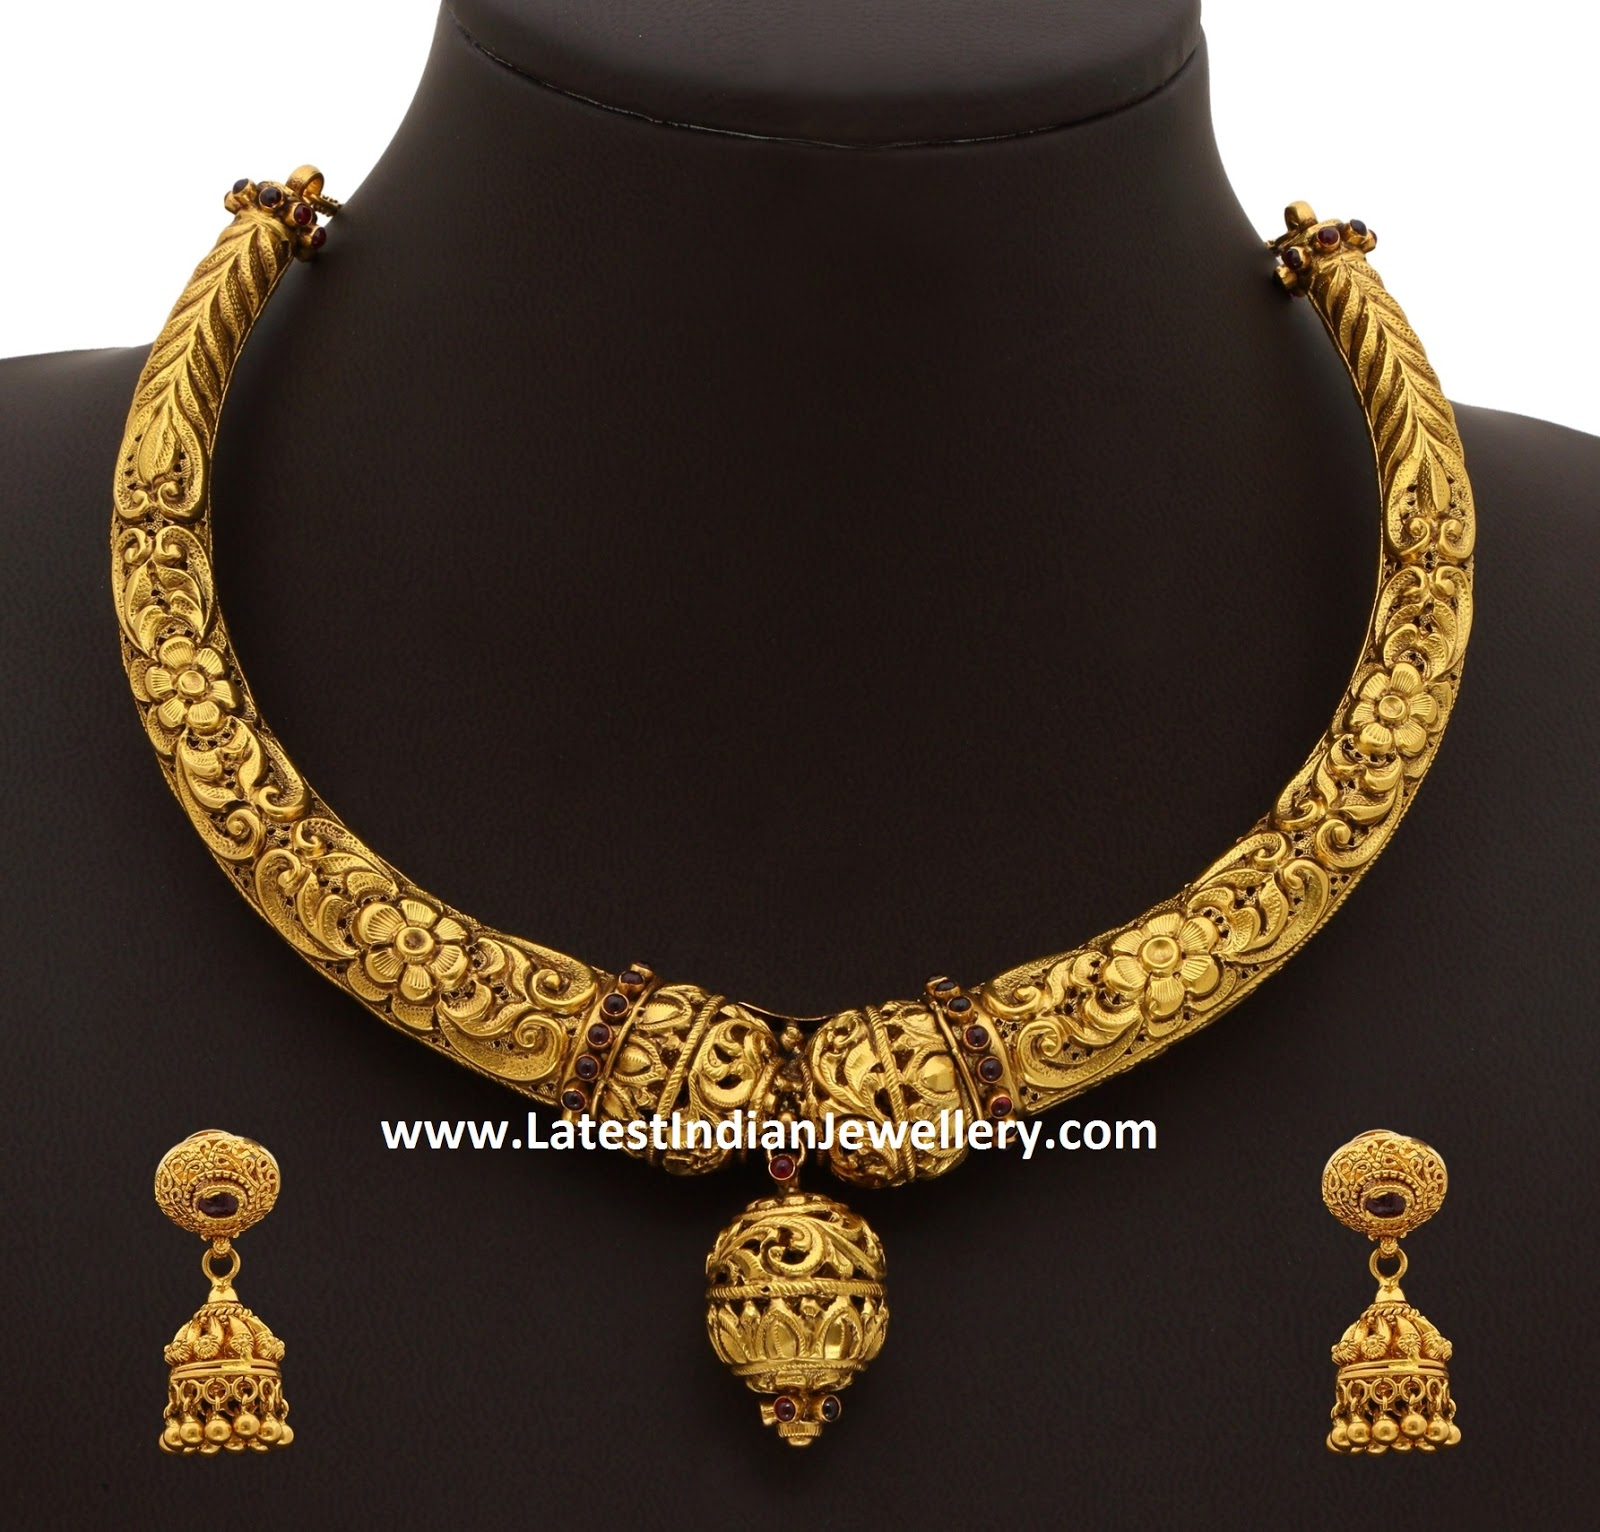 75gms Gold Kanti Necklace